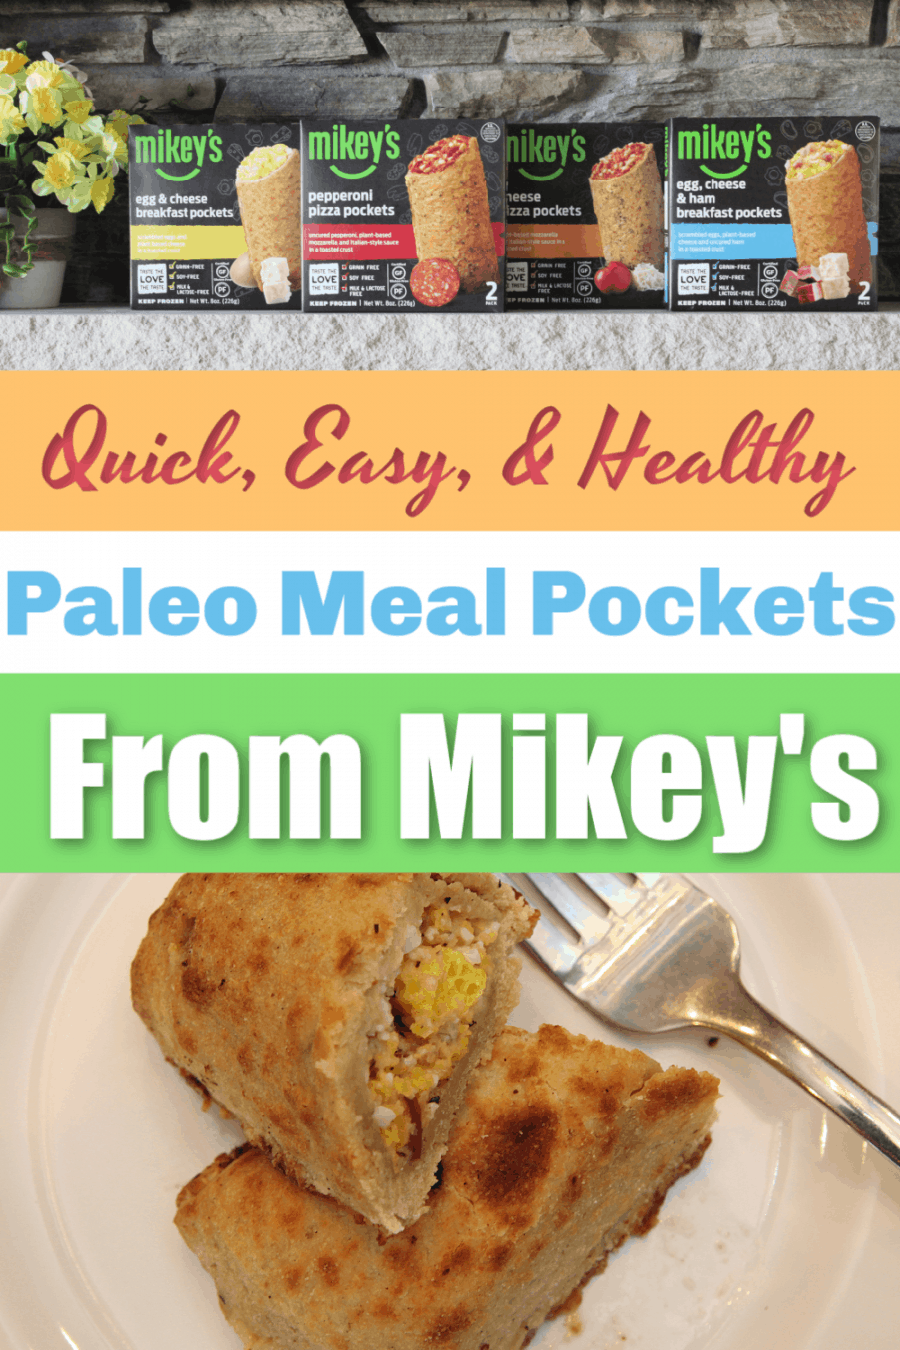 Mikey's Paleo Breakfast Pockets: An easy, Delicious, On-The-Go Meal